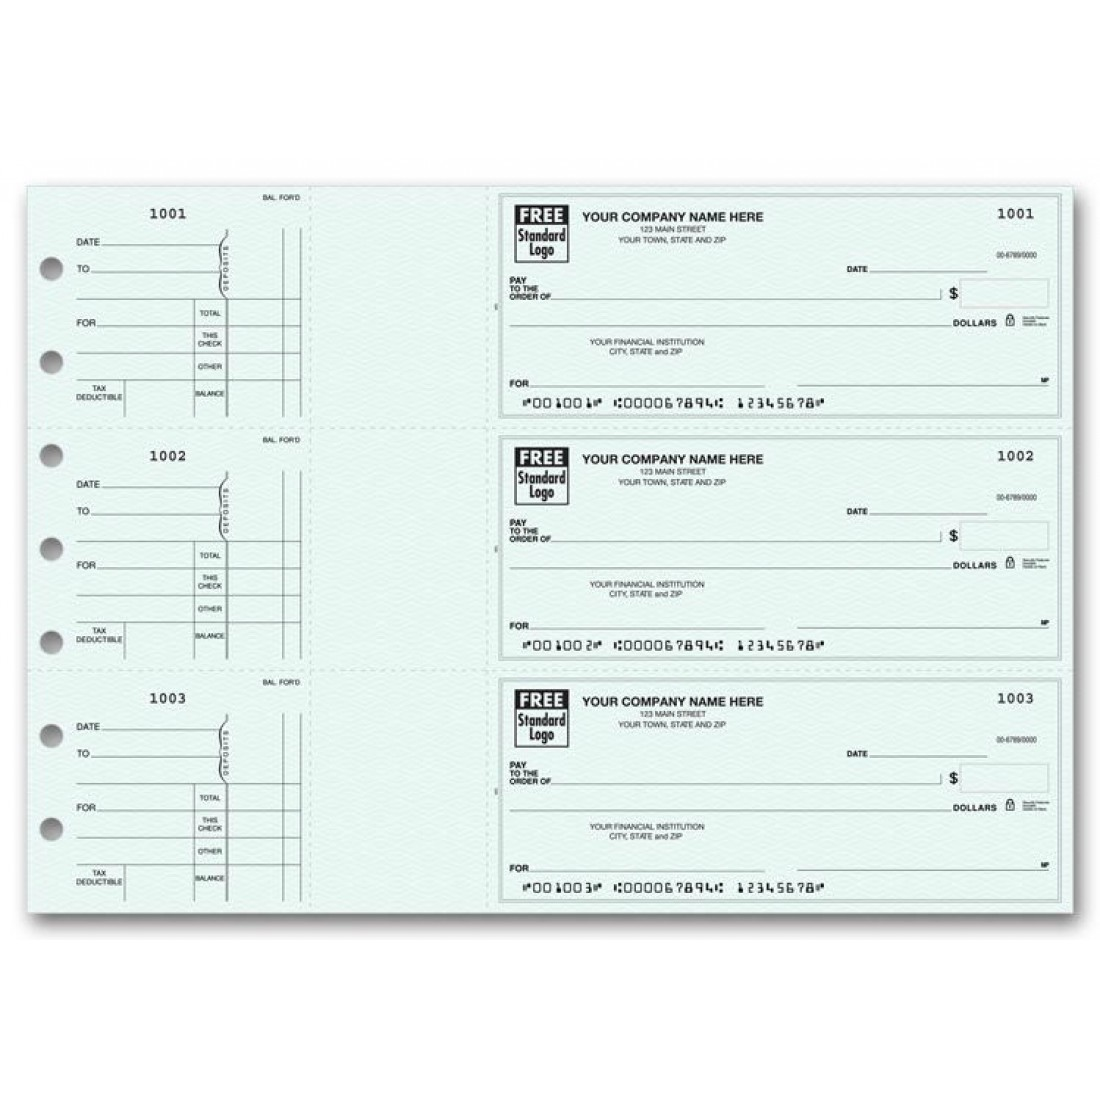 53224N, 3-Per-Page End-Stub Voucher Check